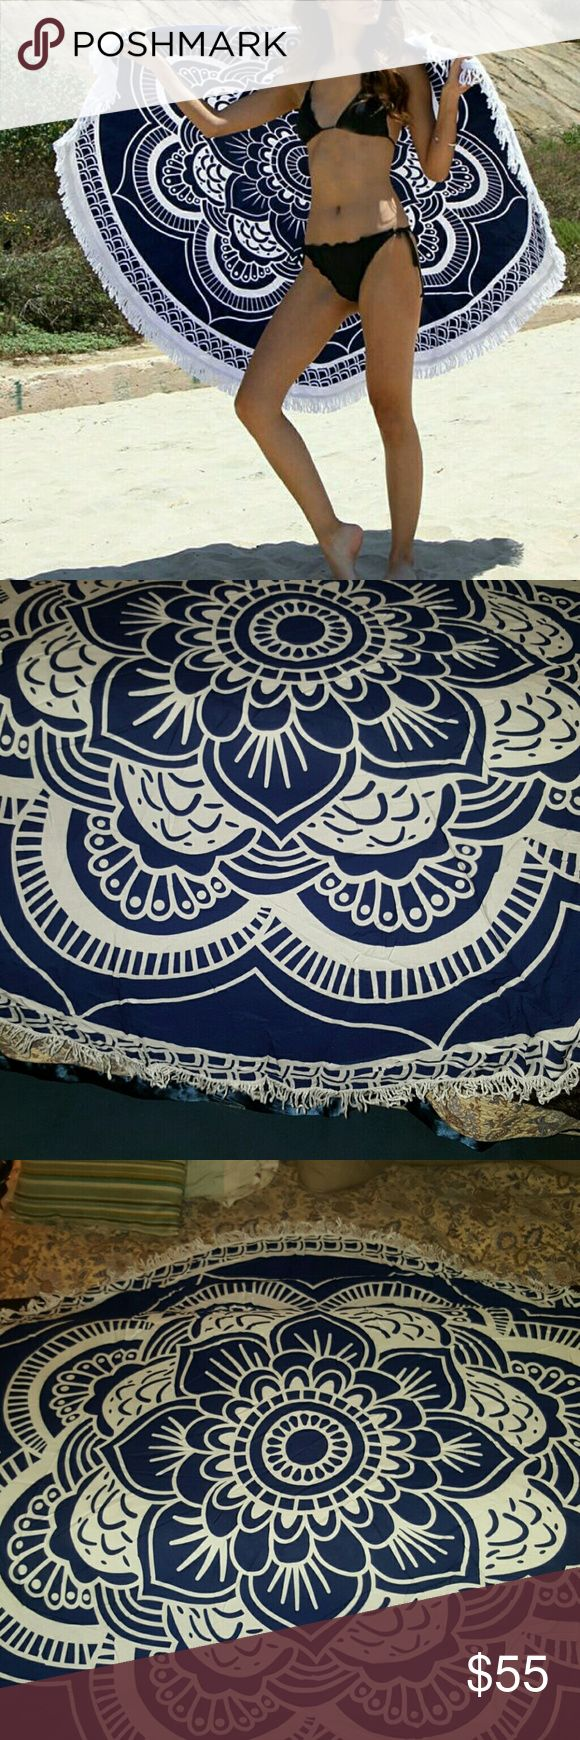 """TRENDING! ROUND BEACH COVER. (Up) SHAWL Gorgeous Navy Blue and White with Fringe BOHO Chic Beach Cover, Ground Tanning, Picnic Cover. 55 """" WIDTH AND LENGTH. Beautifully soft Cotton POLY Blend, quick dry material. COVER UP IN STYLE, FOLD IN HALF AND WEAR AS A SHAWL. Can also be used on furniture, a bed deco or wall hanging. FASHION Swim Coverups"""